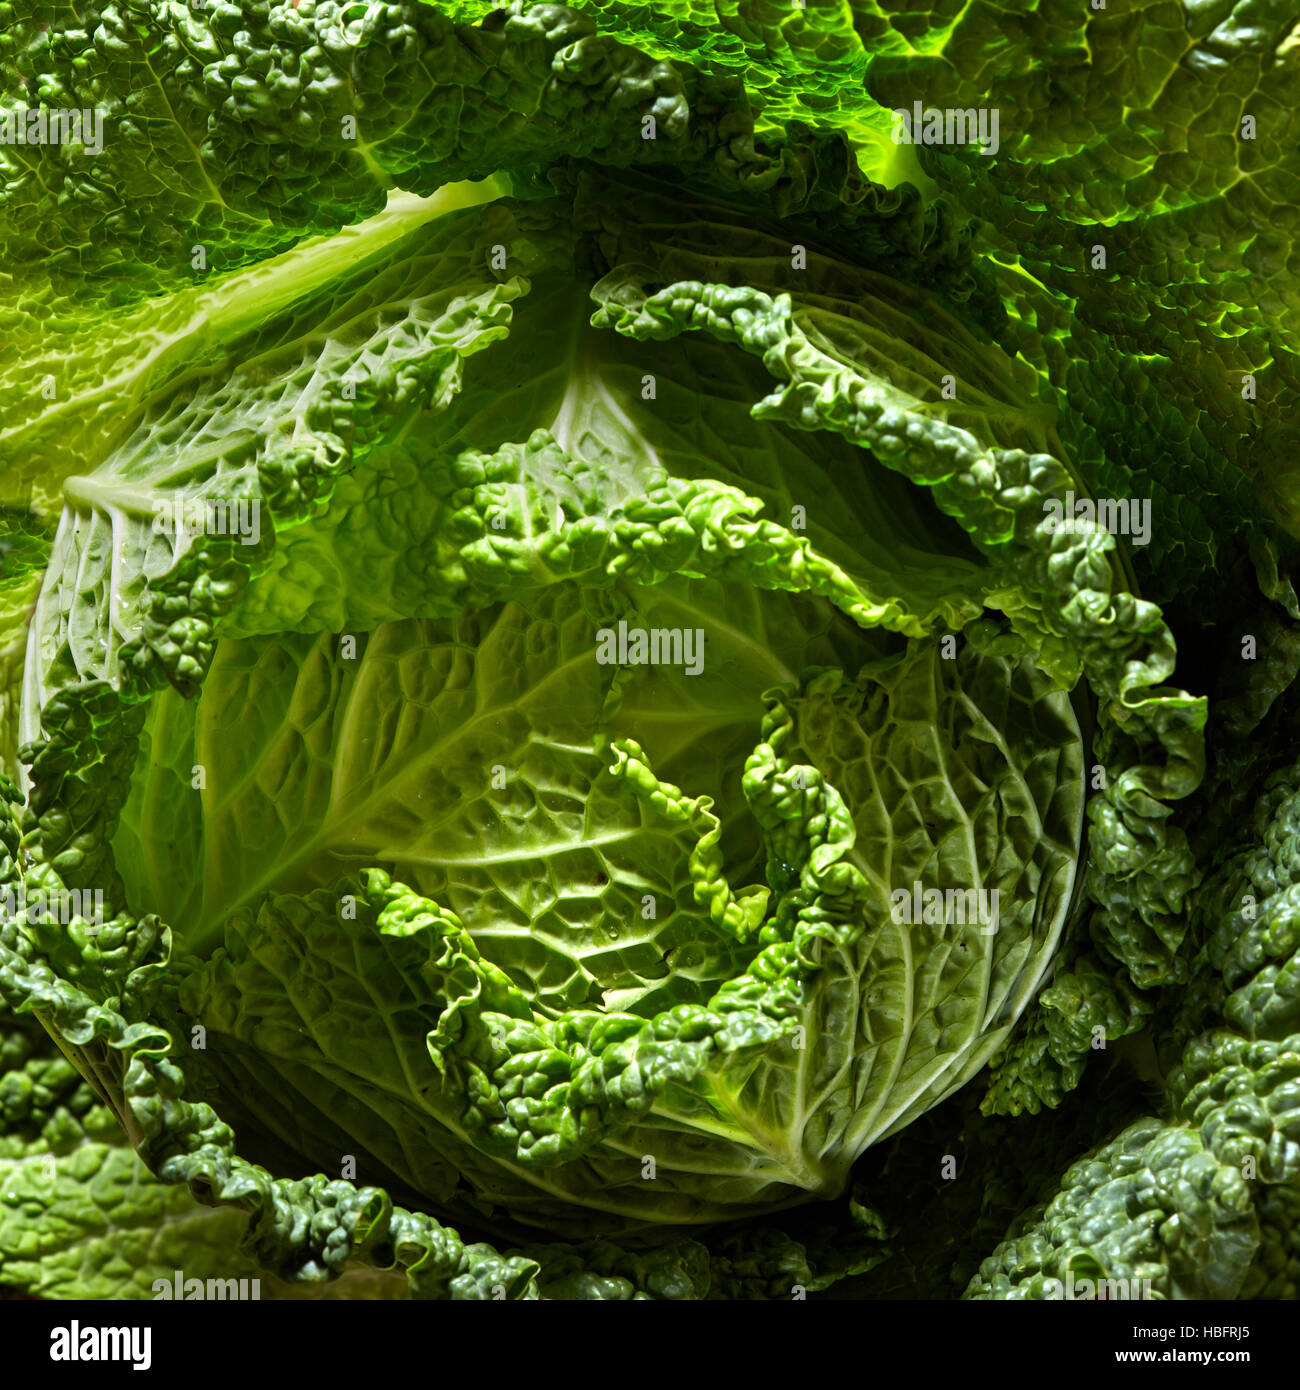 Savoy cabbage head - Stock Image